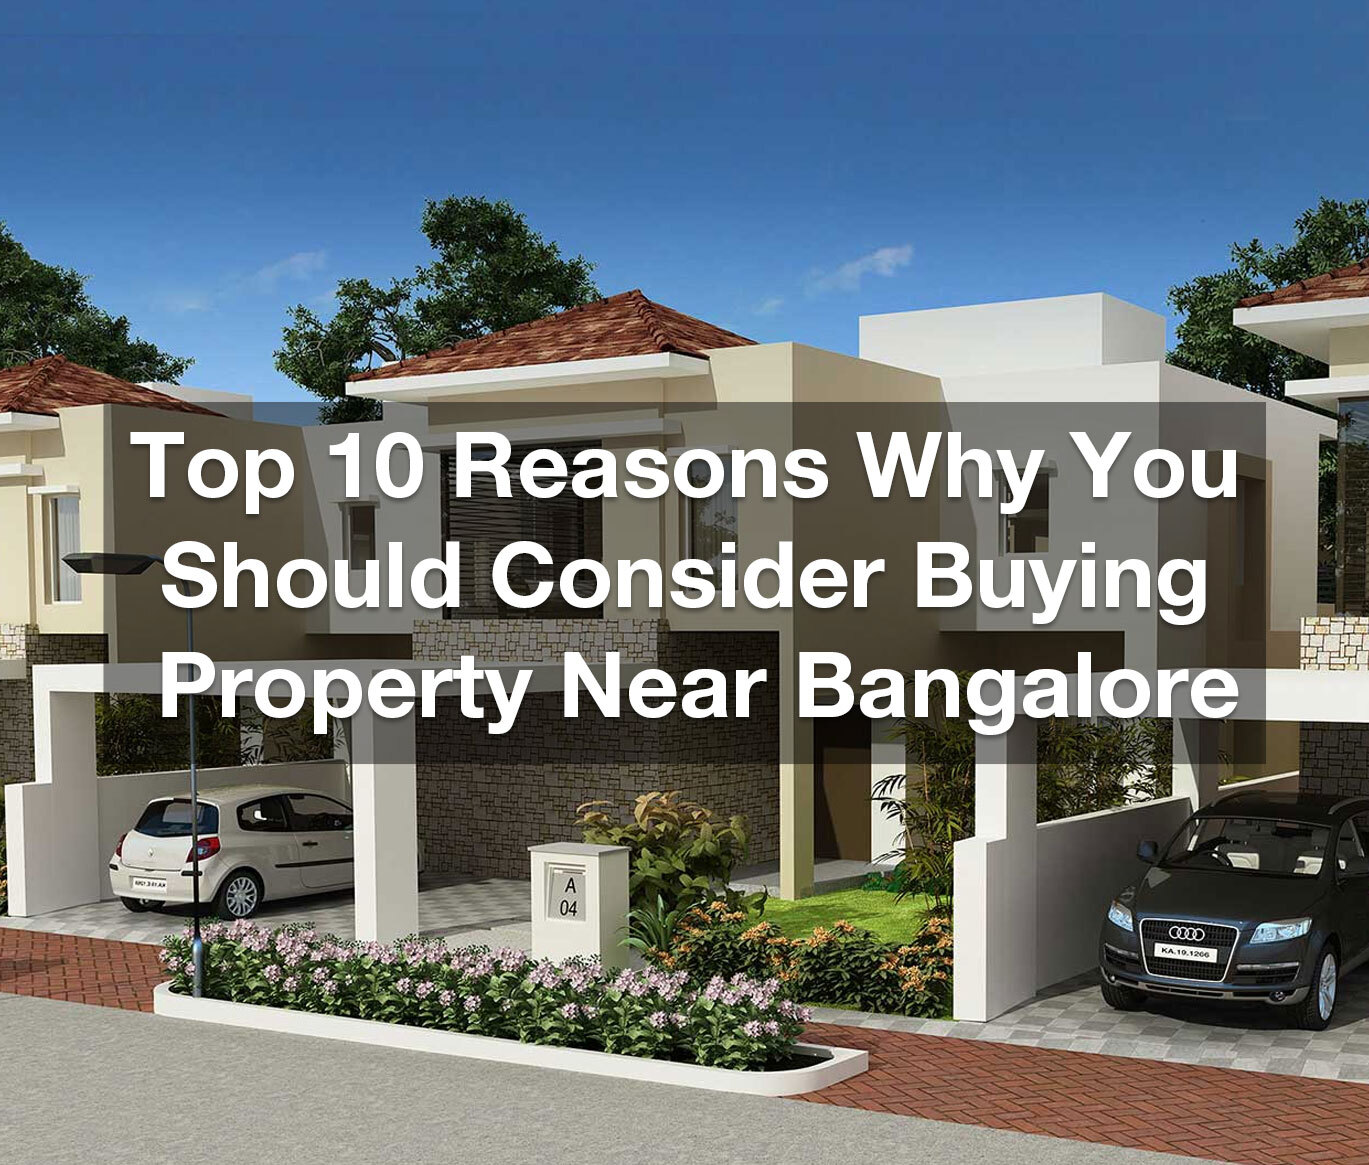 Top 10 reasons why you should consider buying property near Bangalore